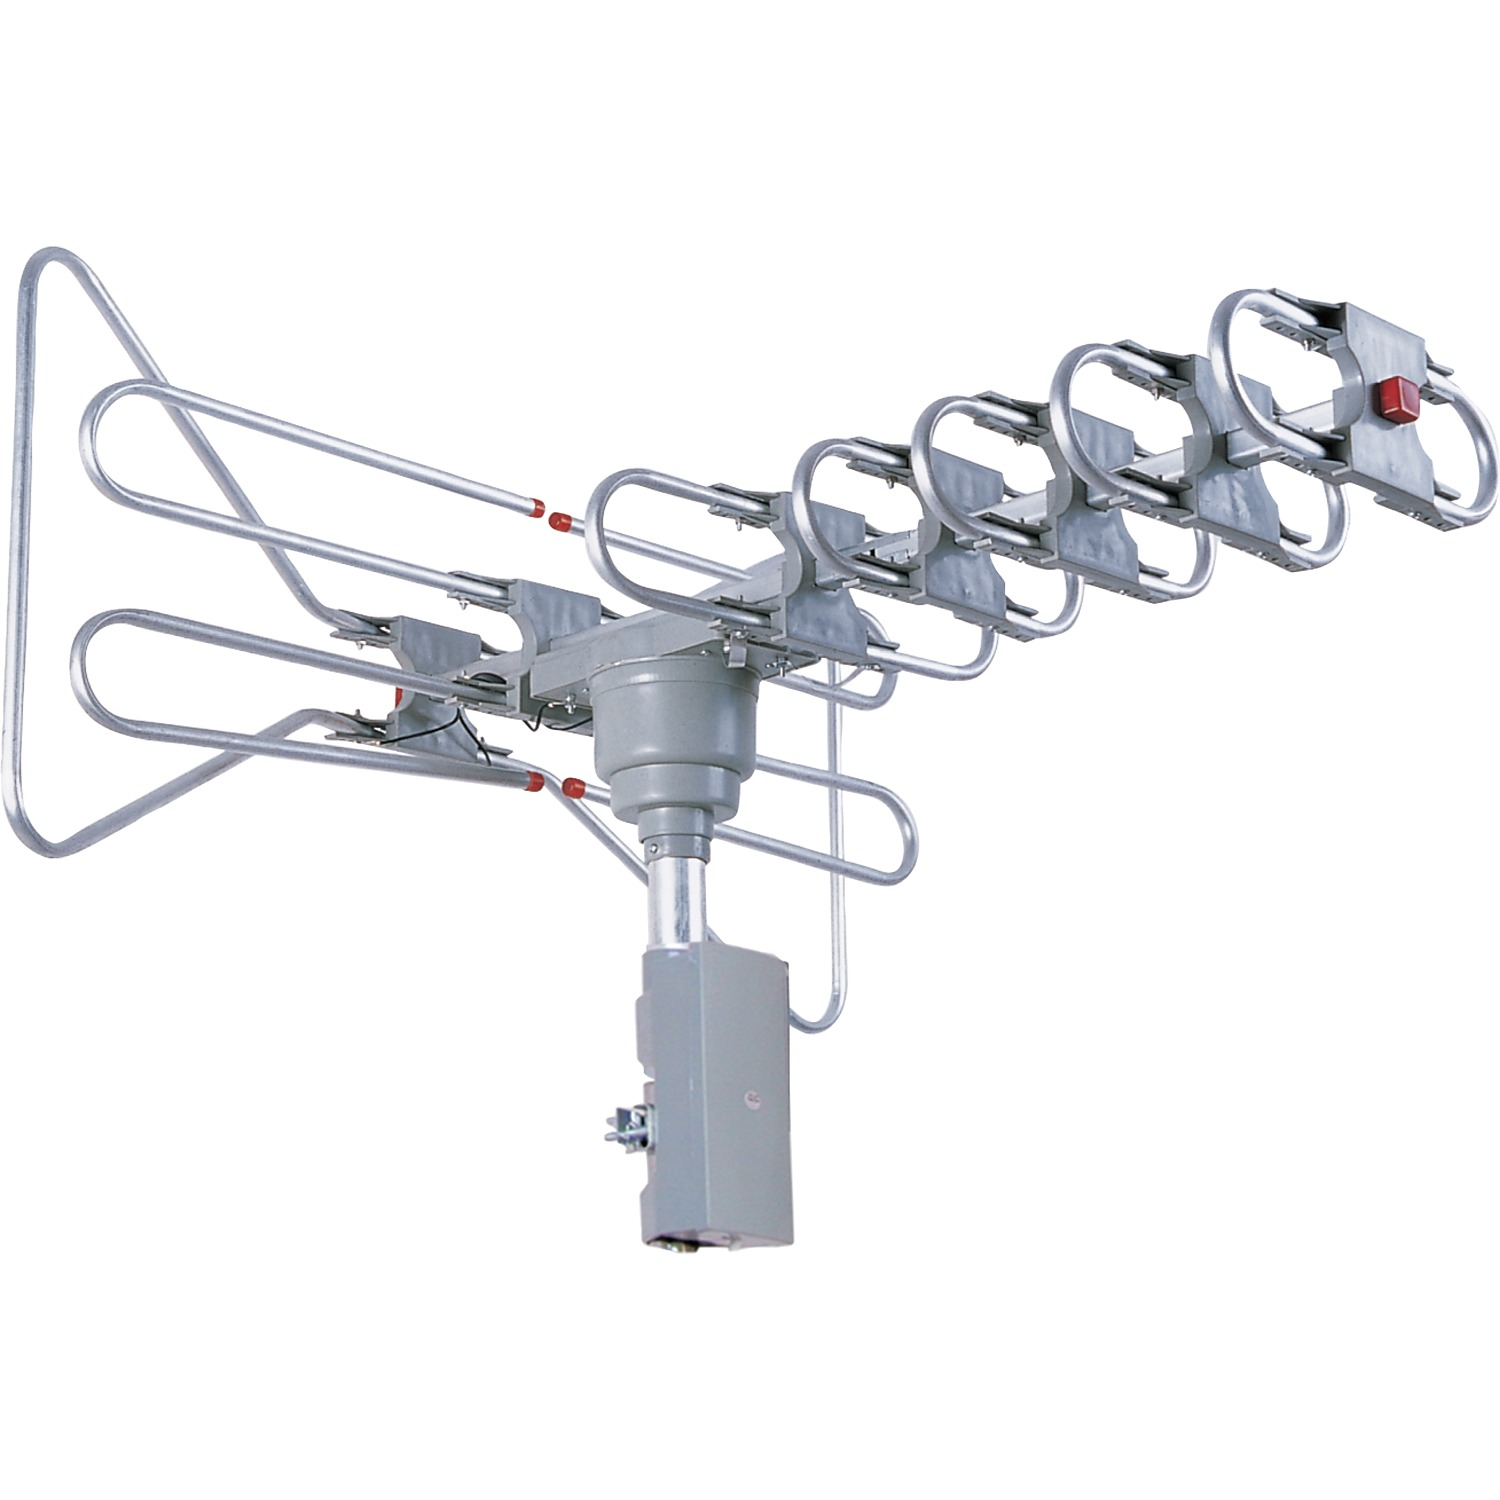 Supersonic SC-603 SC-603 360° HDTV Digital Amplified Motorized Rotating Outdoor Antenna